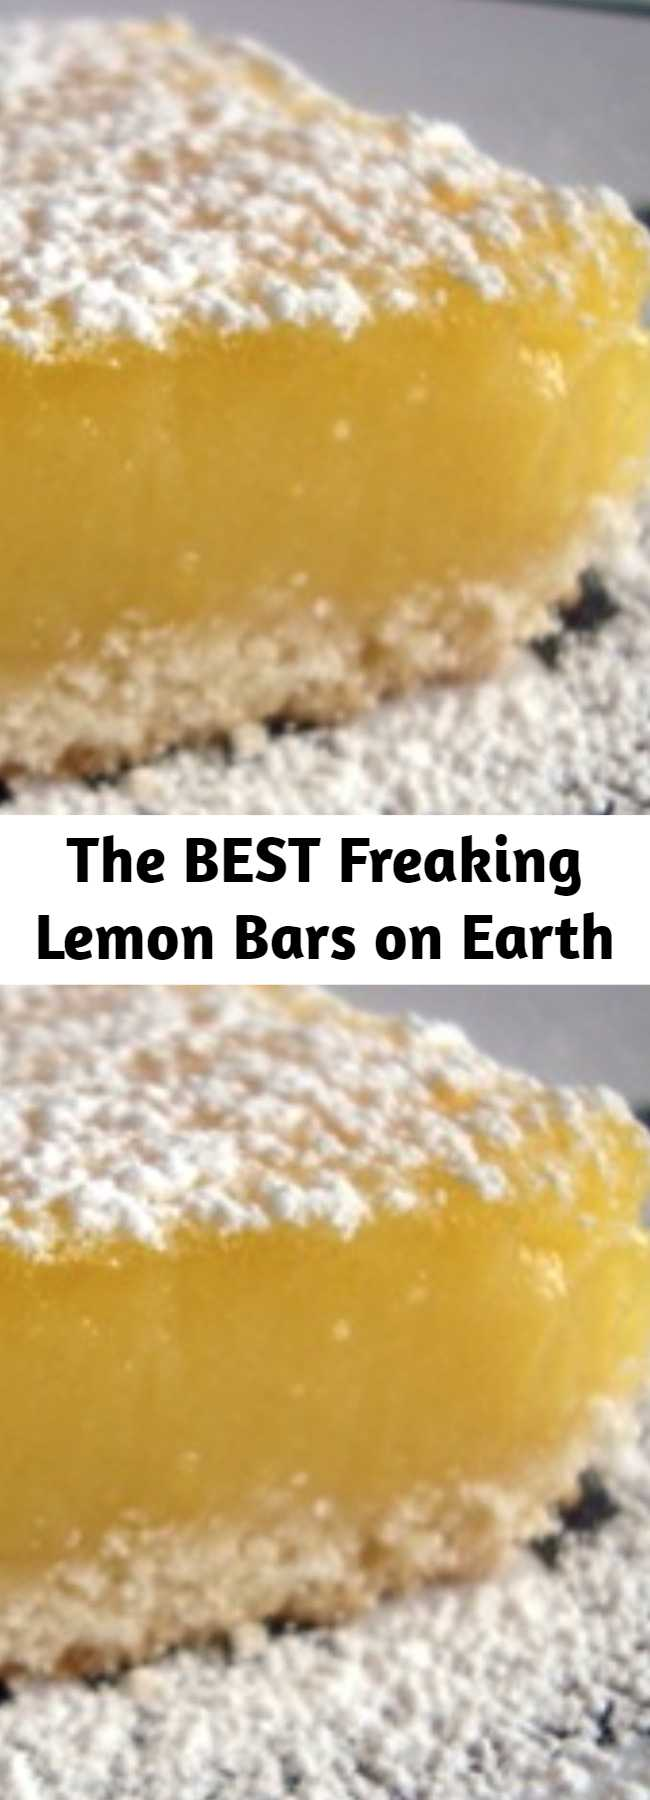 The BEST Freaking Lemon Bars on Earth - You think I'm kidding? You will never, ever, buy the ready-to-make box of pseudo-lemon bars again. This one is the be all and end all. This one is The BEST Freaking Lemon Bars on Earth!